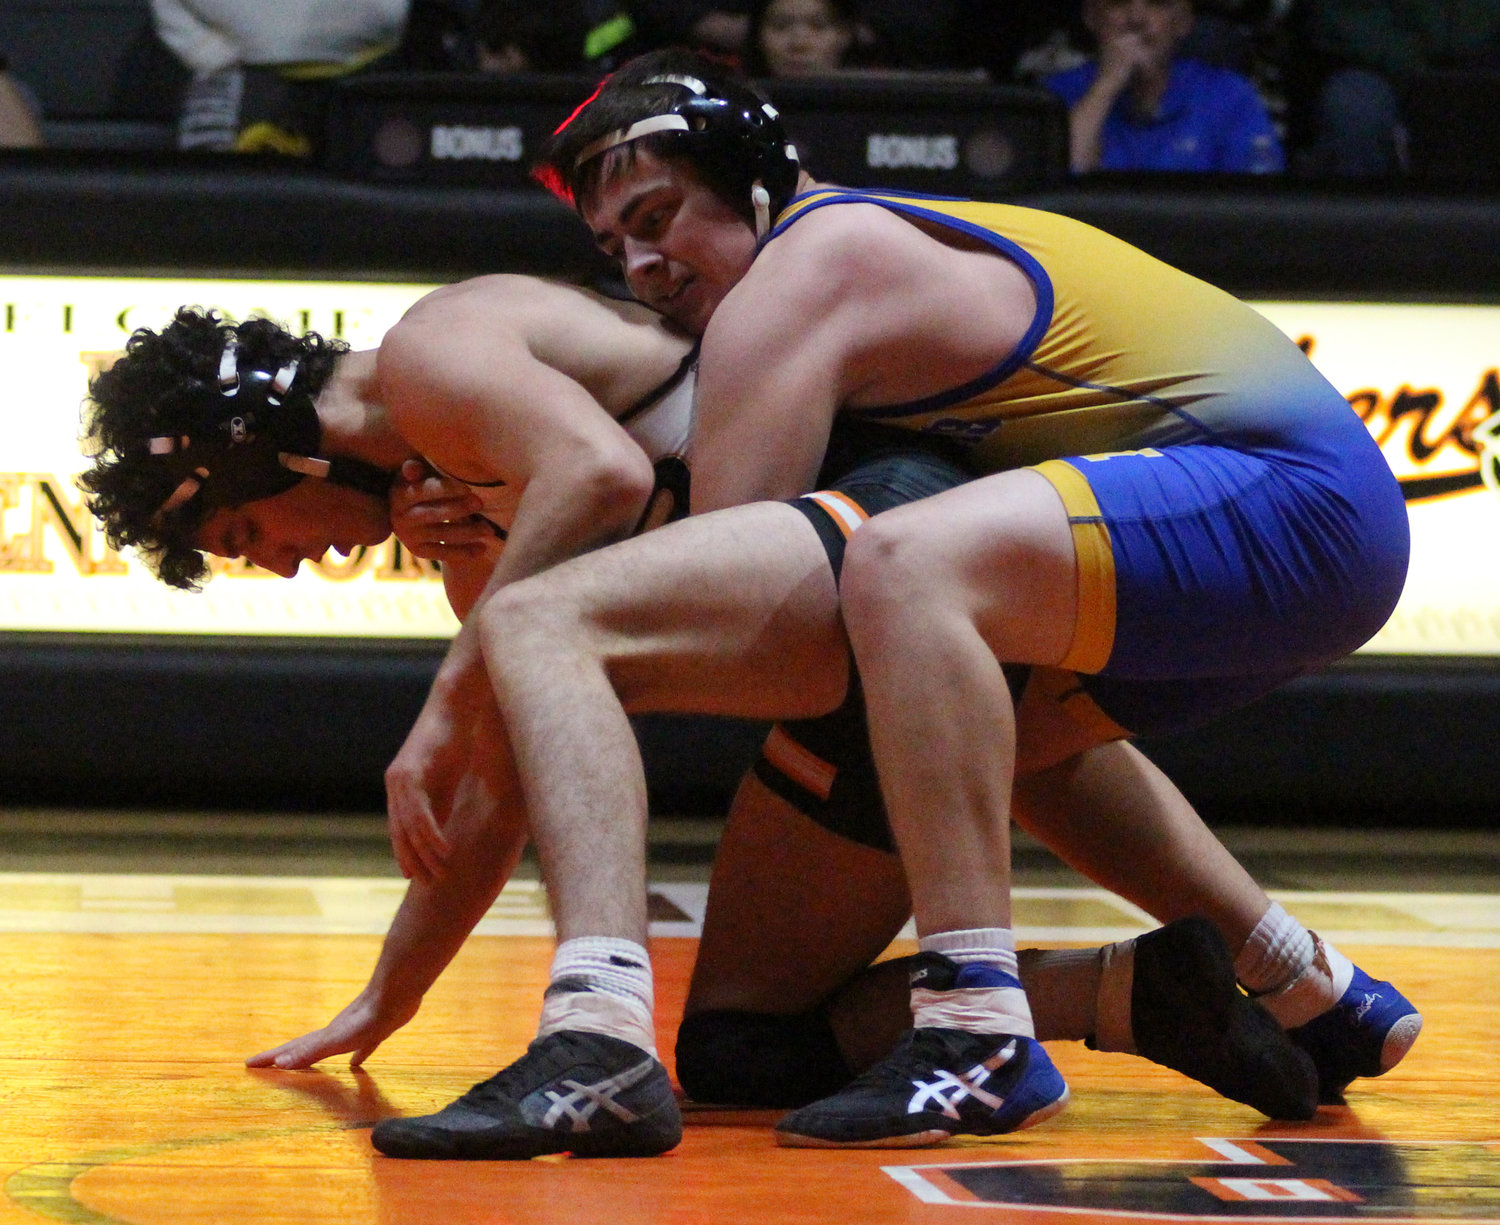 Ayden Miller vs. Jonah Bower of East Pennsboro.